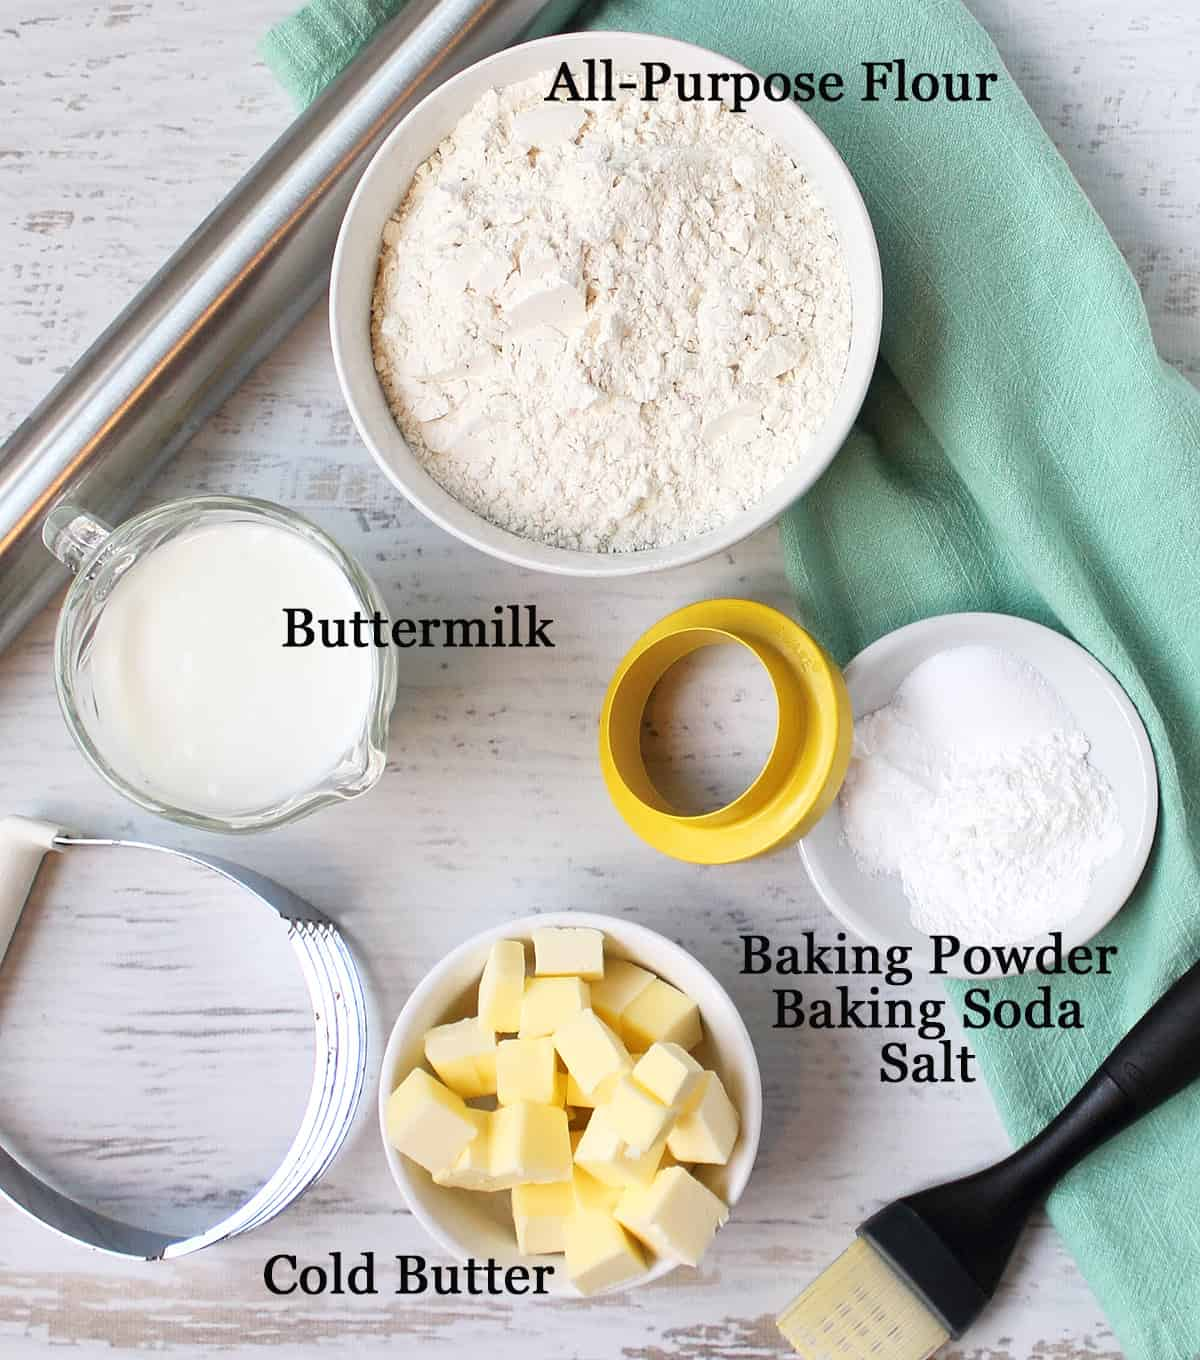 Ingredients for southern buttermilk biscuits on white table, labeled.